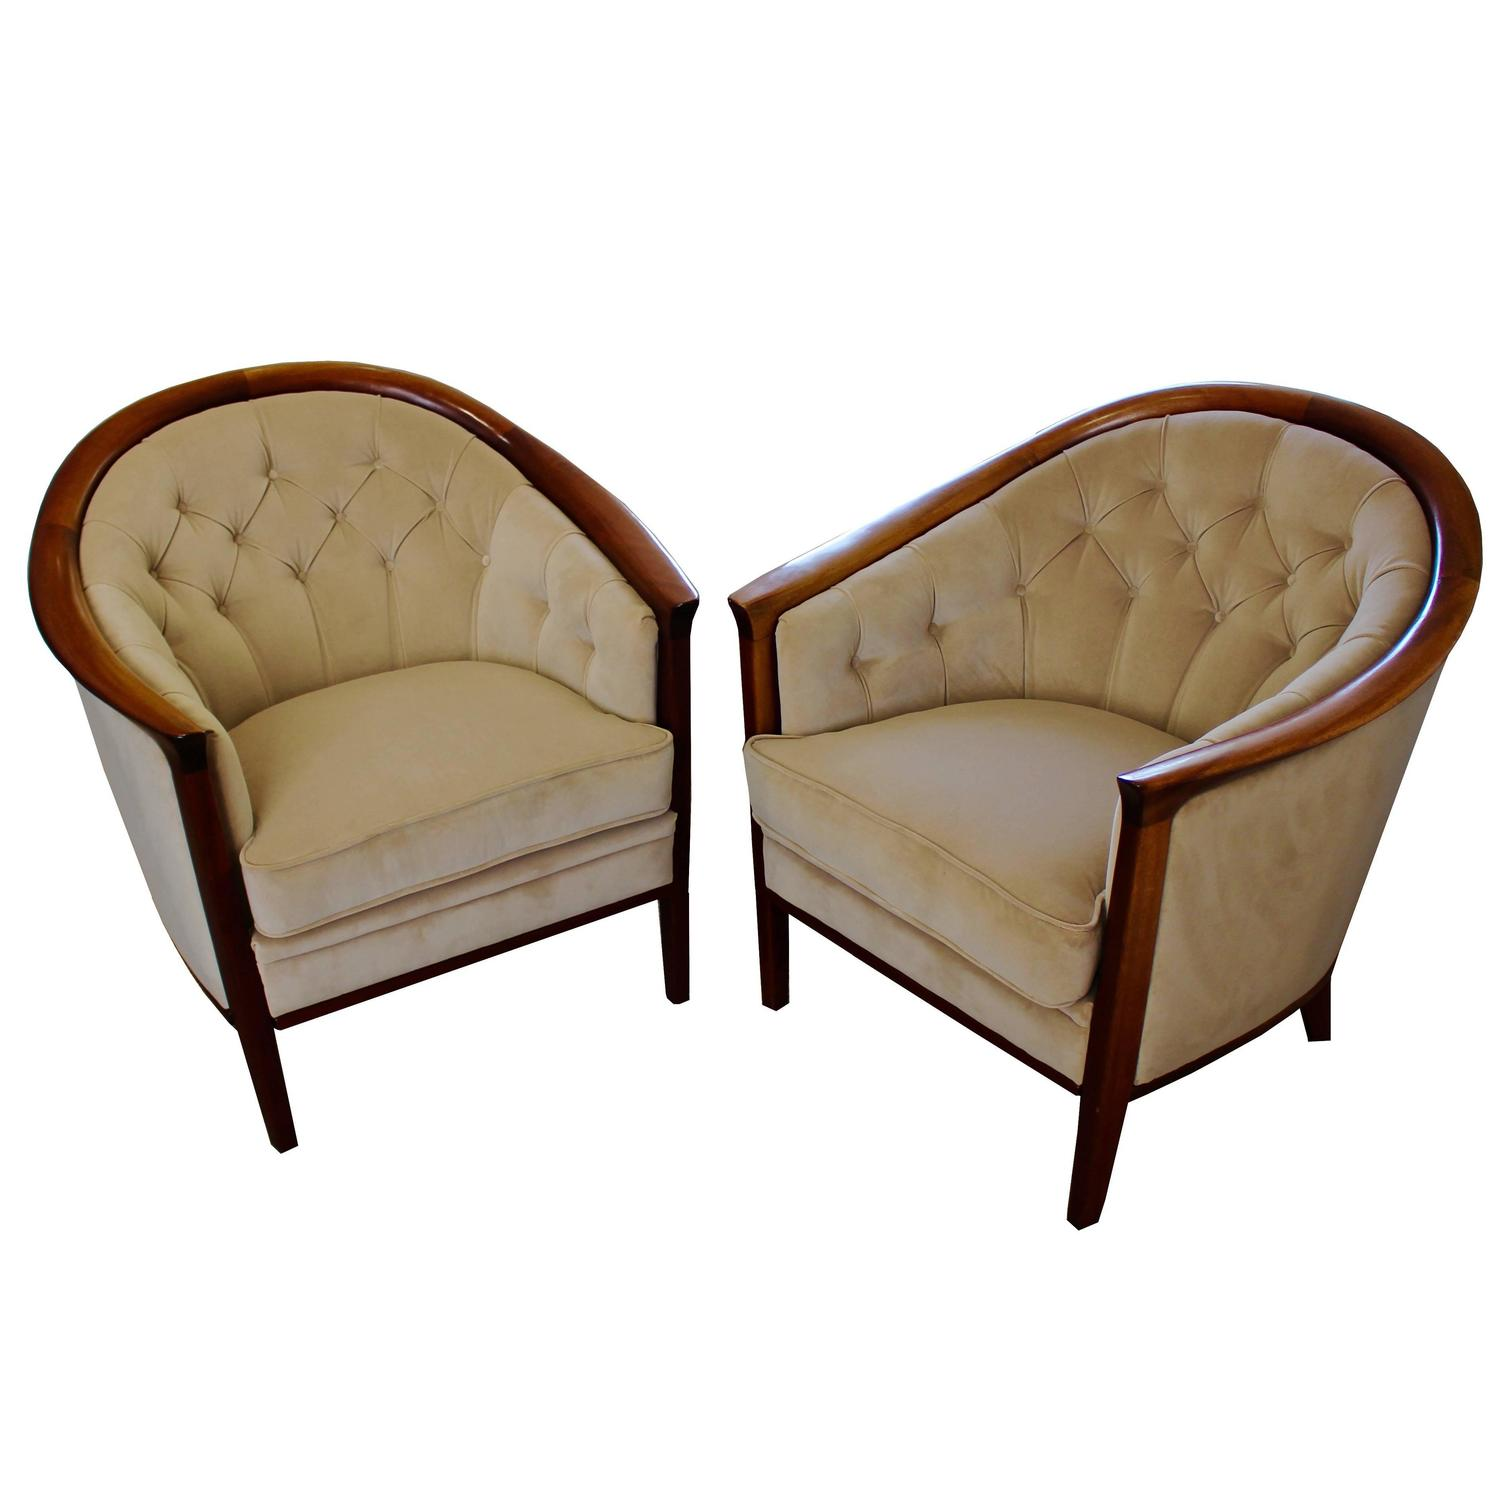 Pair of Swedish Wood Tub Chairs by Bertil Fridhagen circa 1960 at